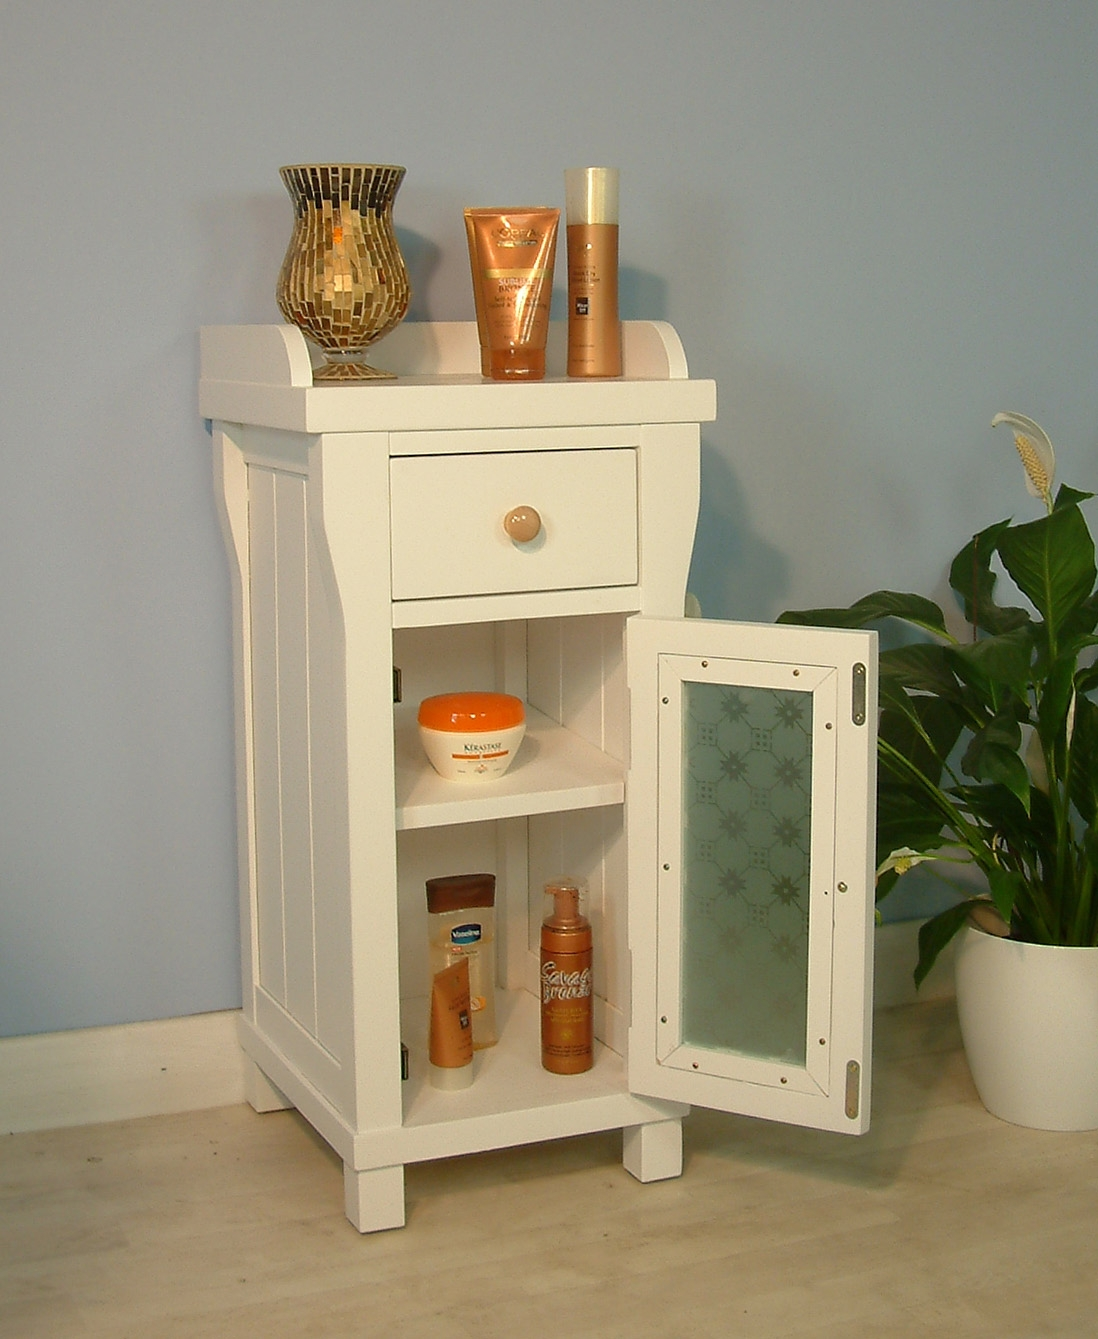 Narrow Bathroom Storage Drawers